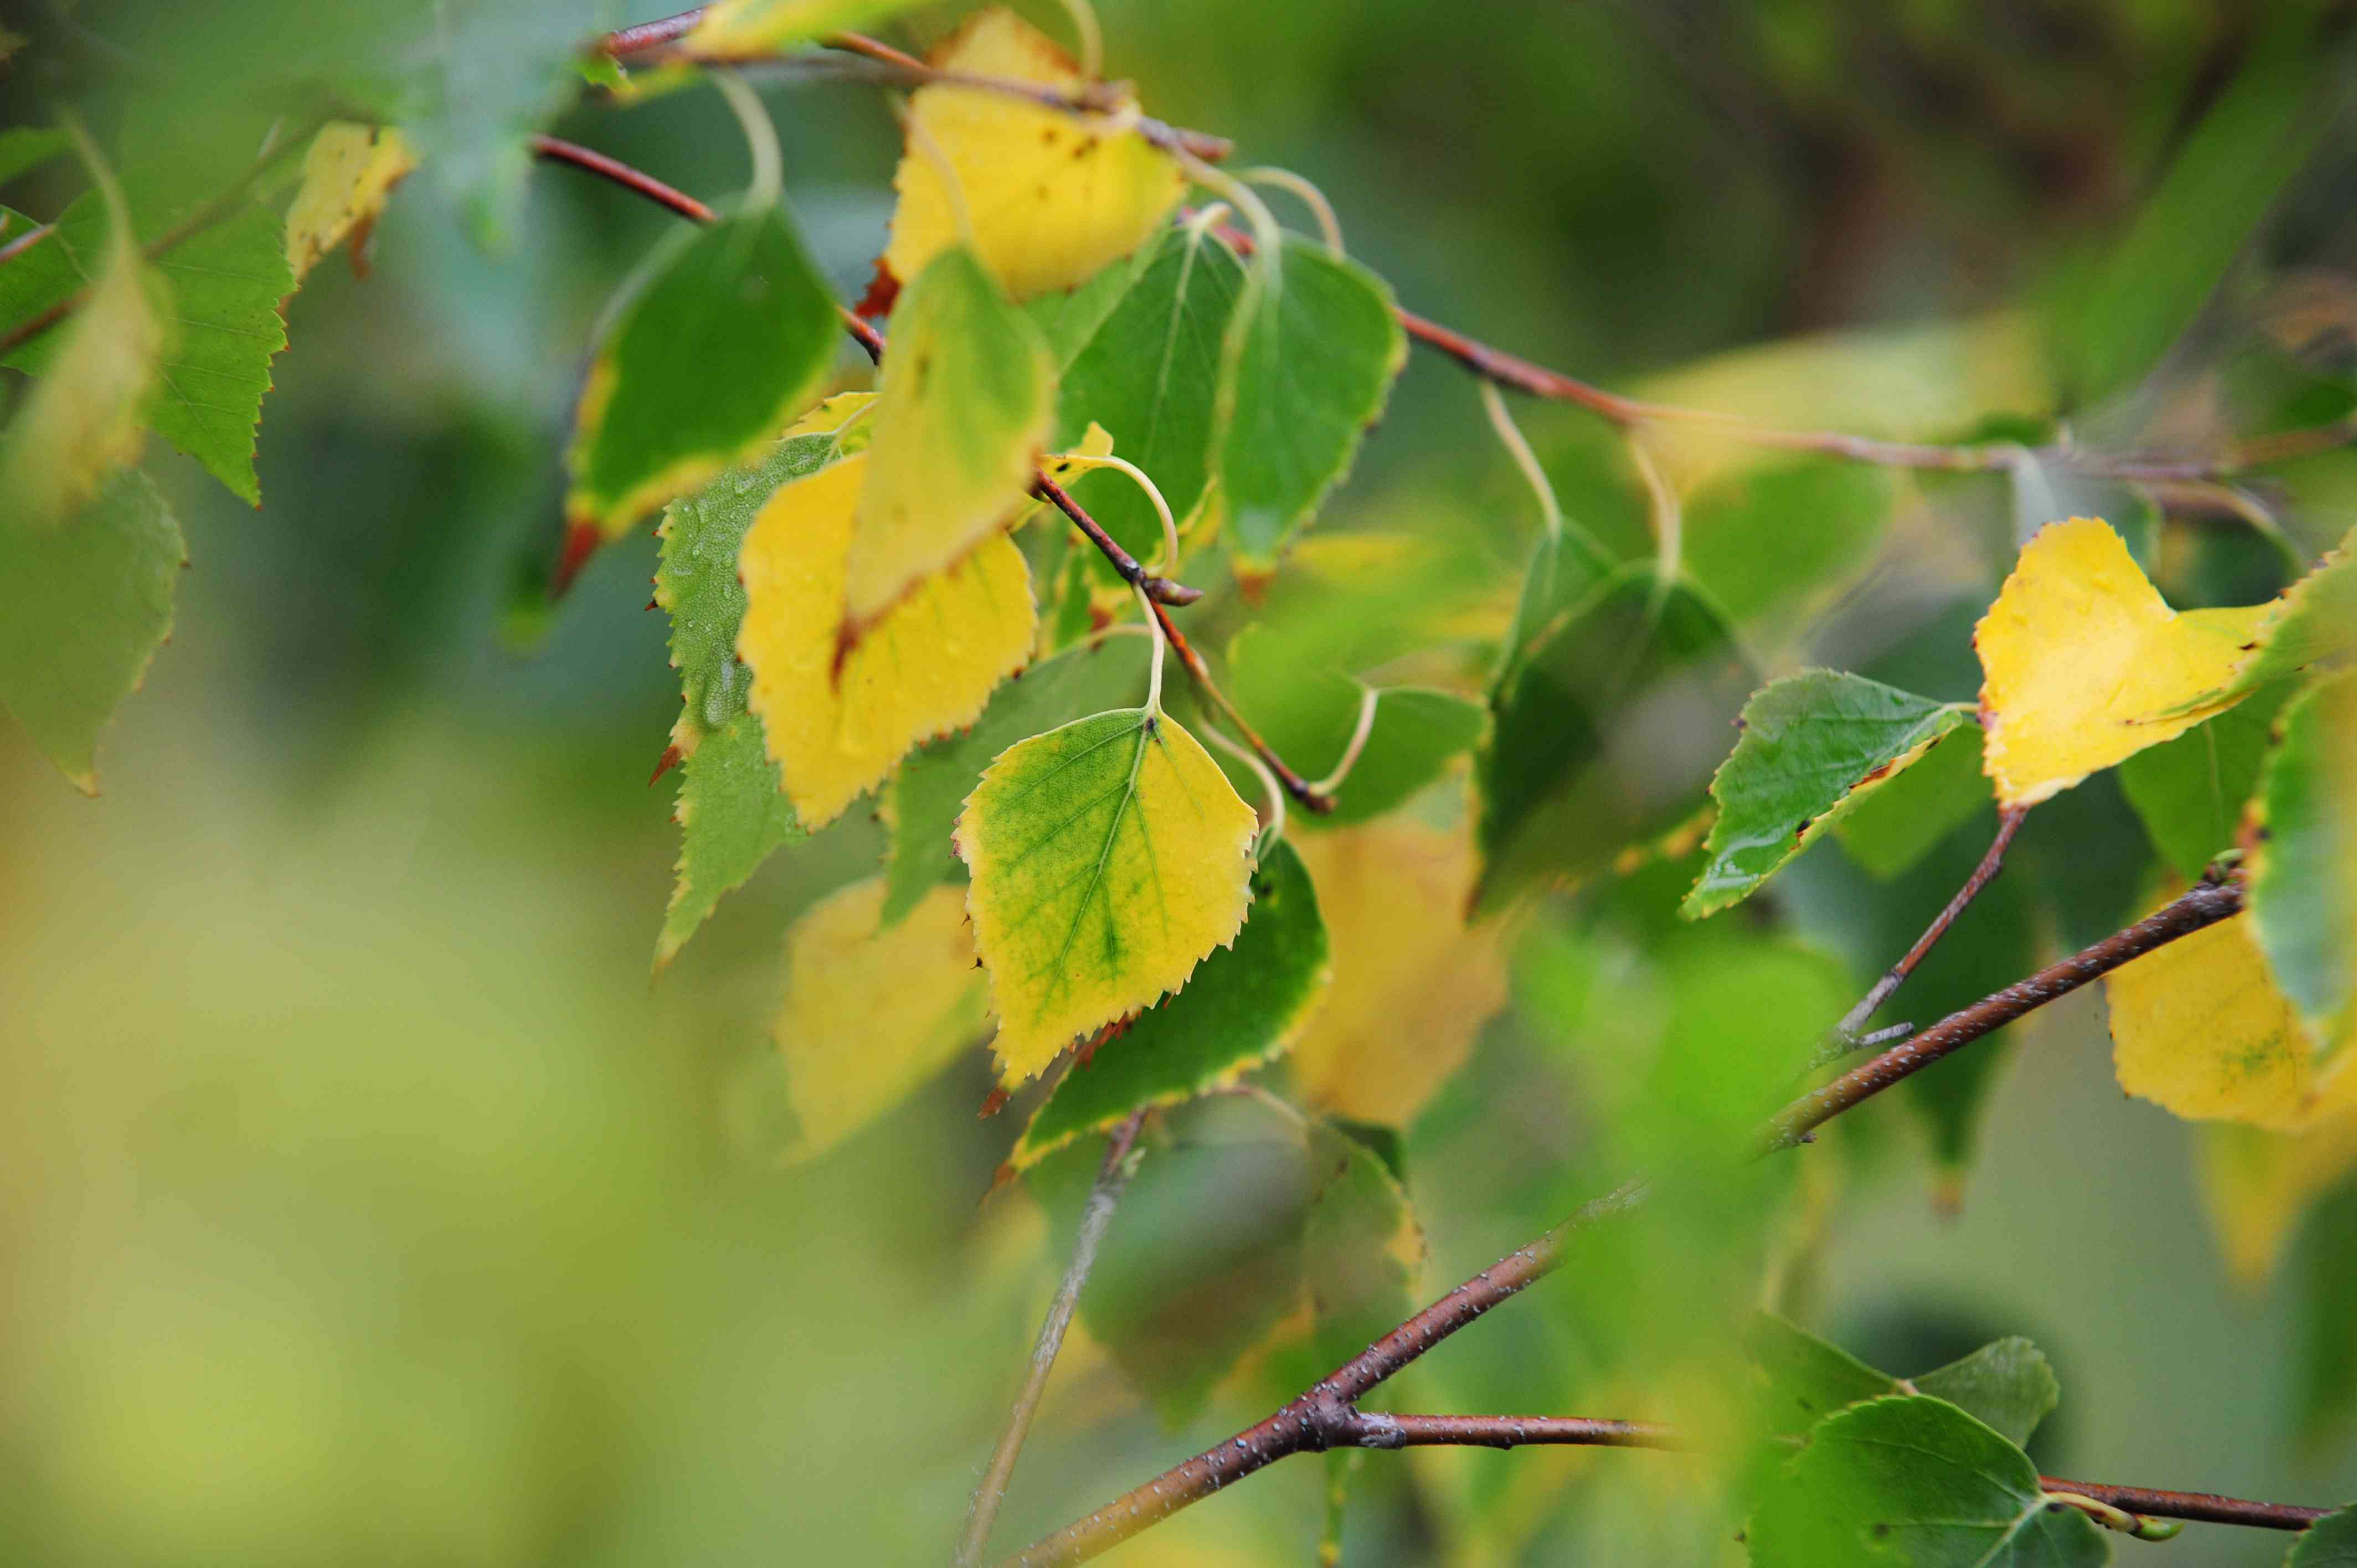 Silver birch tree branch with green and yellow leaves closeup